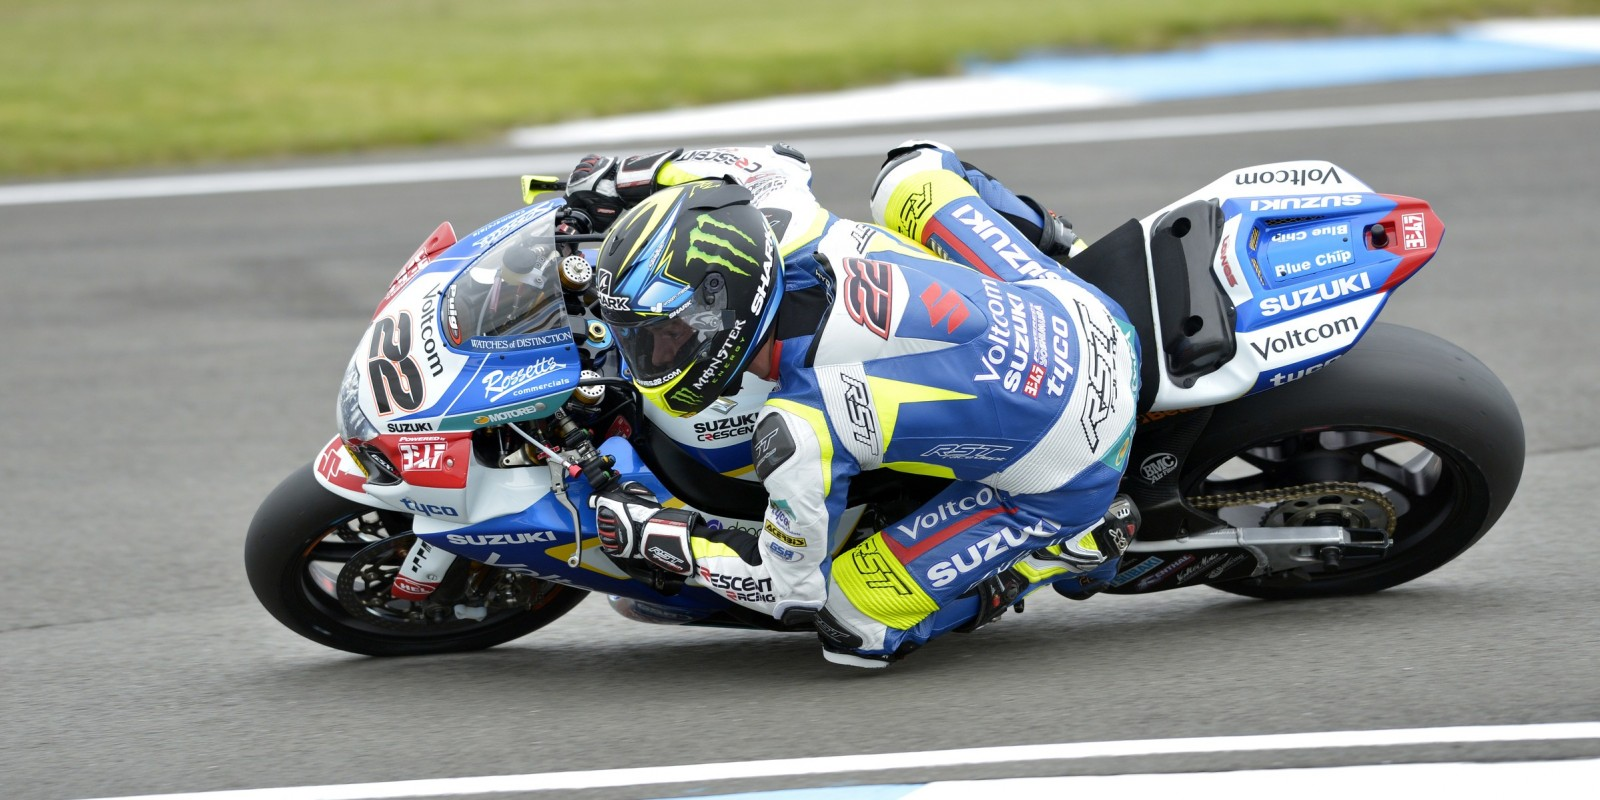 Images of Suzuki racer Alex Lowes at R6 of the 2015 WSBK season